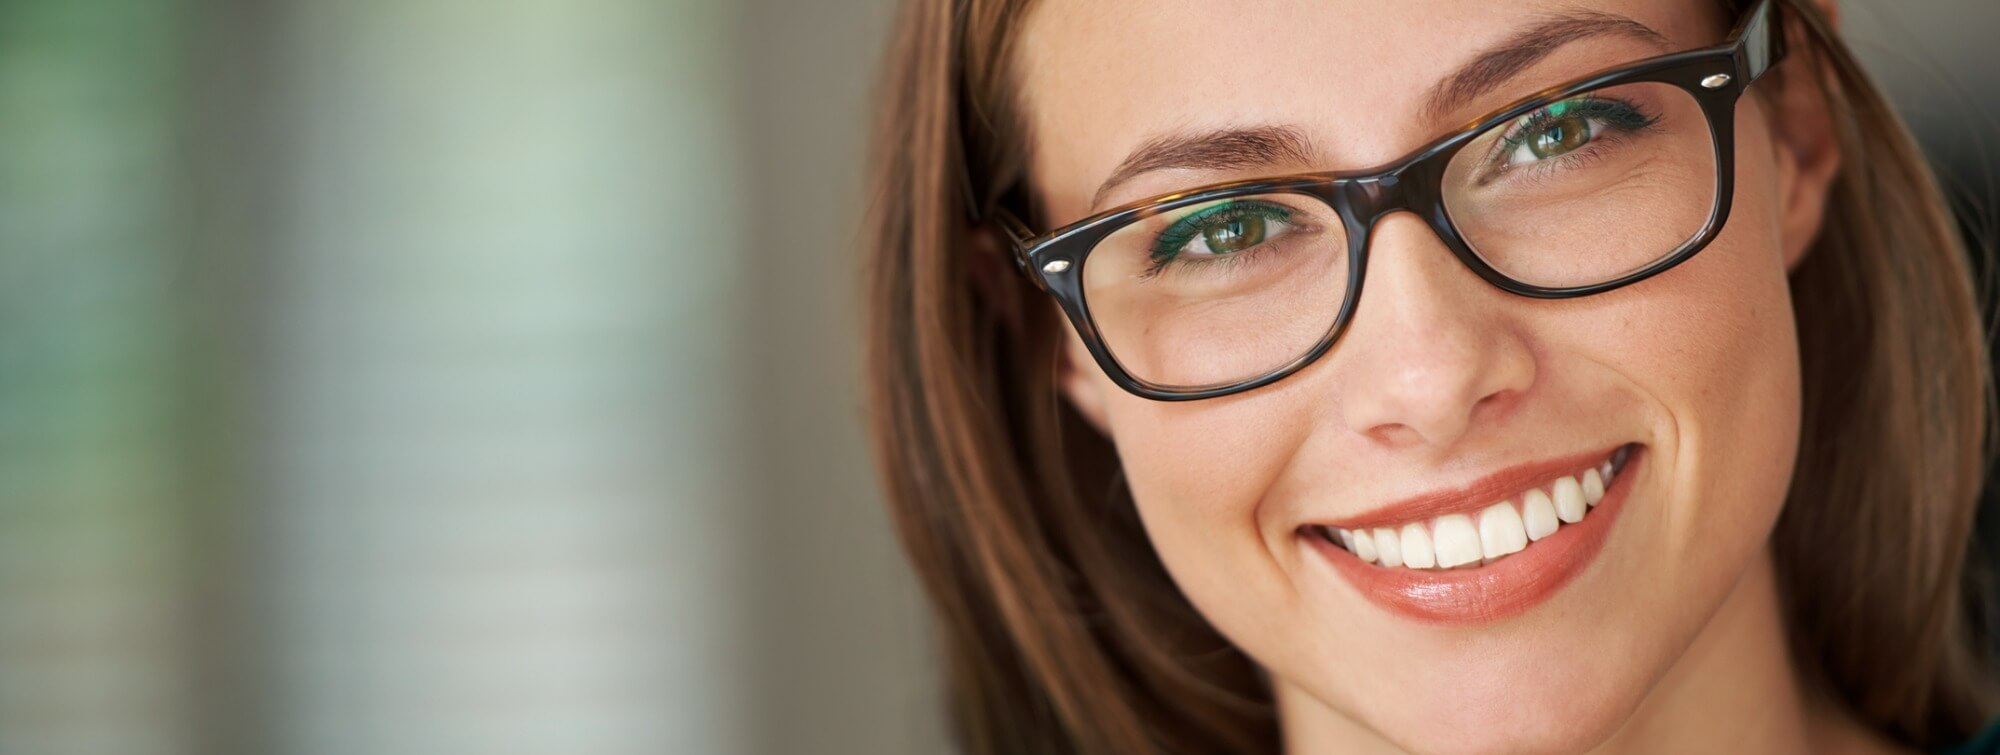 smiling-woman-with-black-frame-glasses